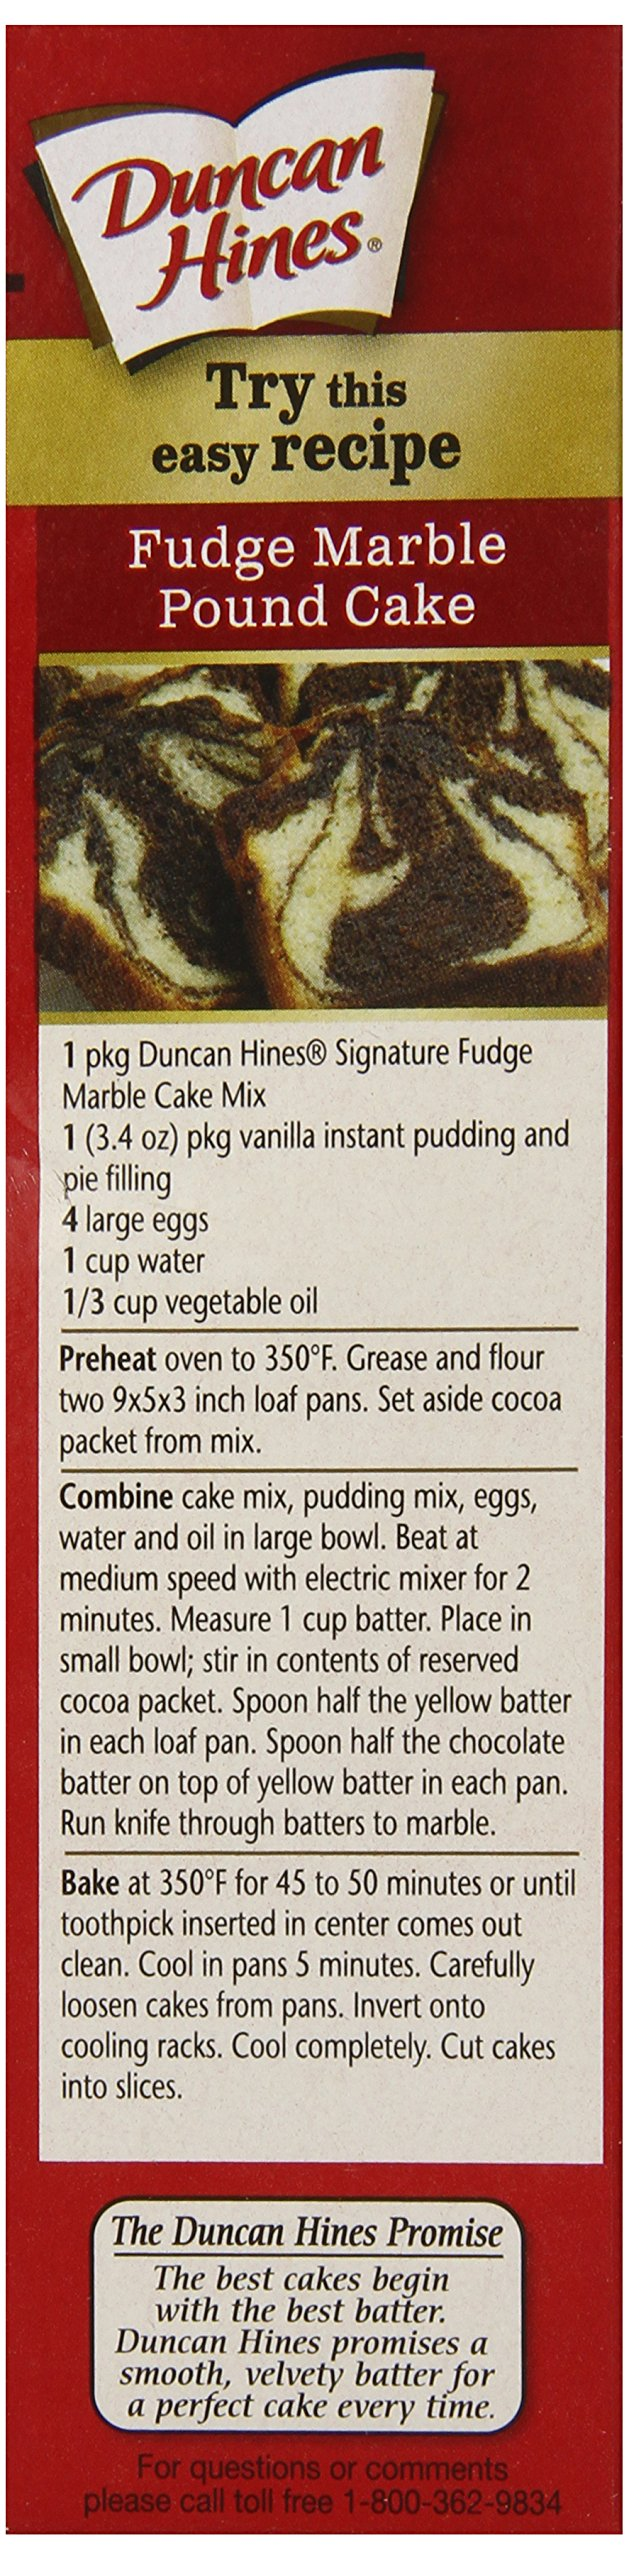 Duncan Hines Cake Mix, Fudge Marble, 16.5 Ounce (Pack of 12) by Duncan Hines (Image #5)